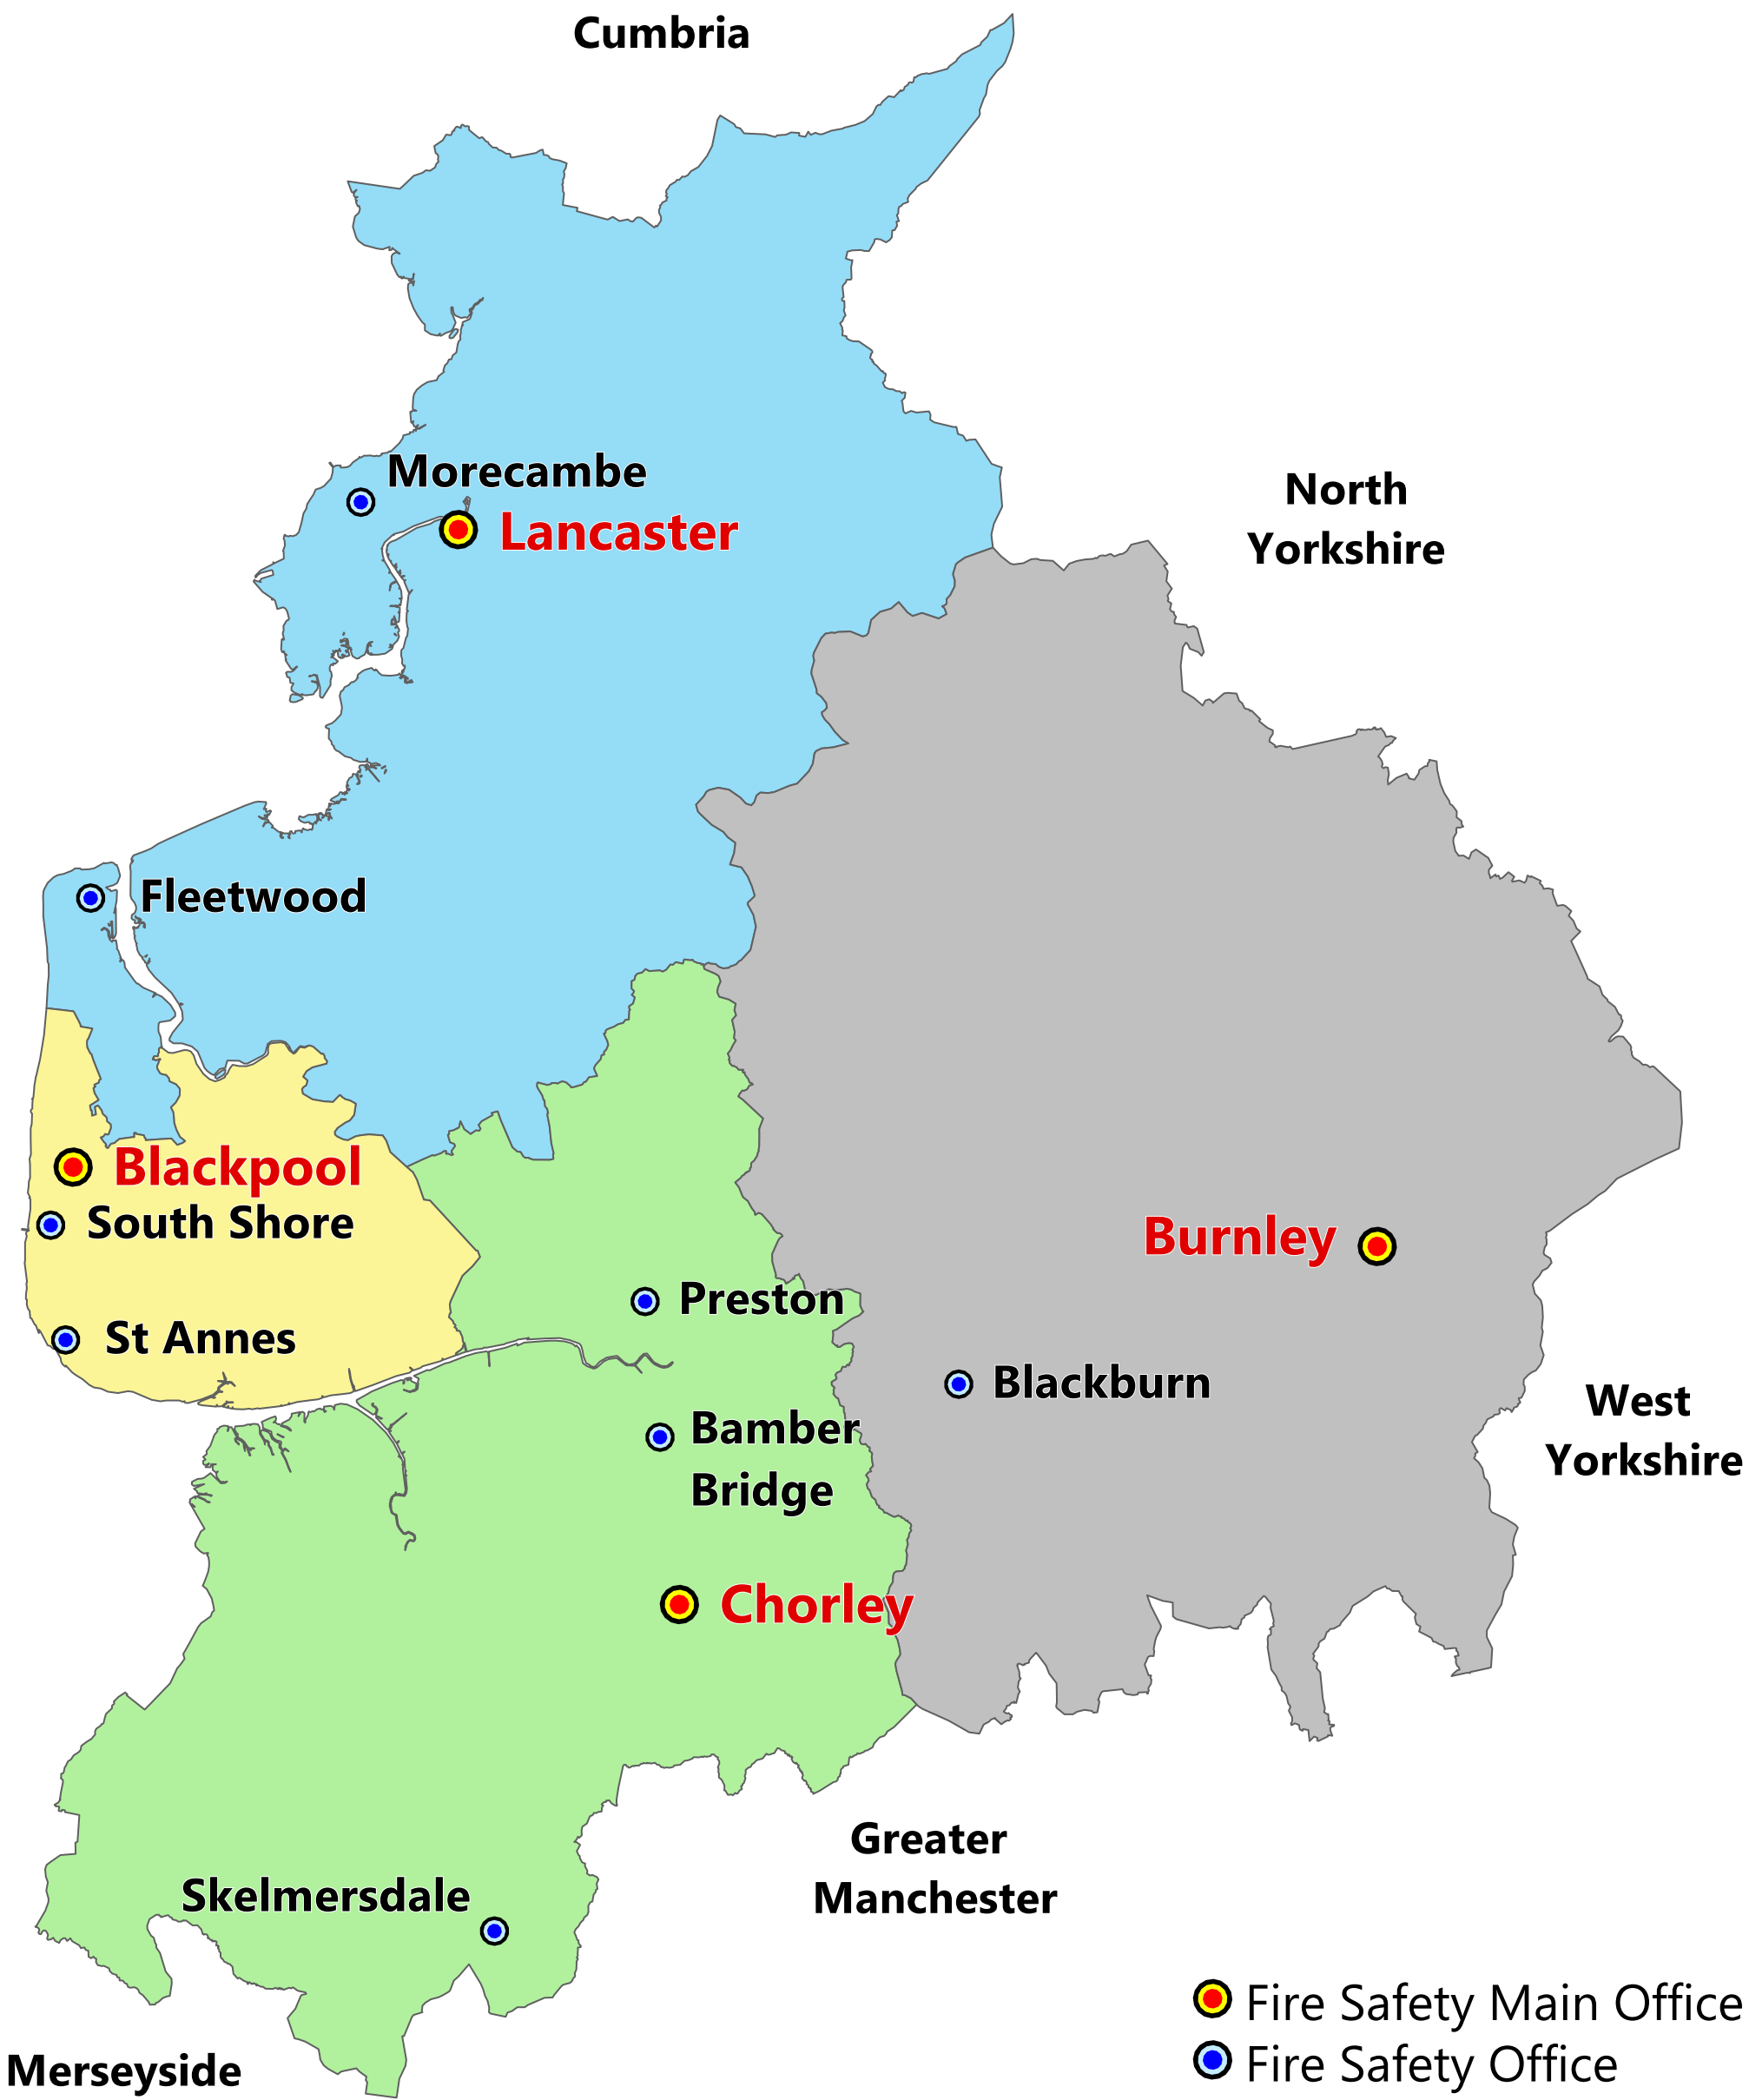 Map showing the fire safety offices in Lancashire